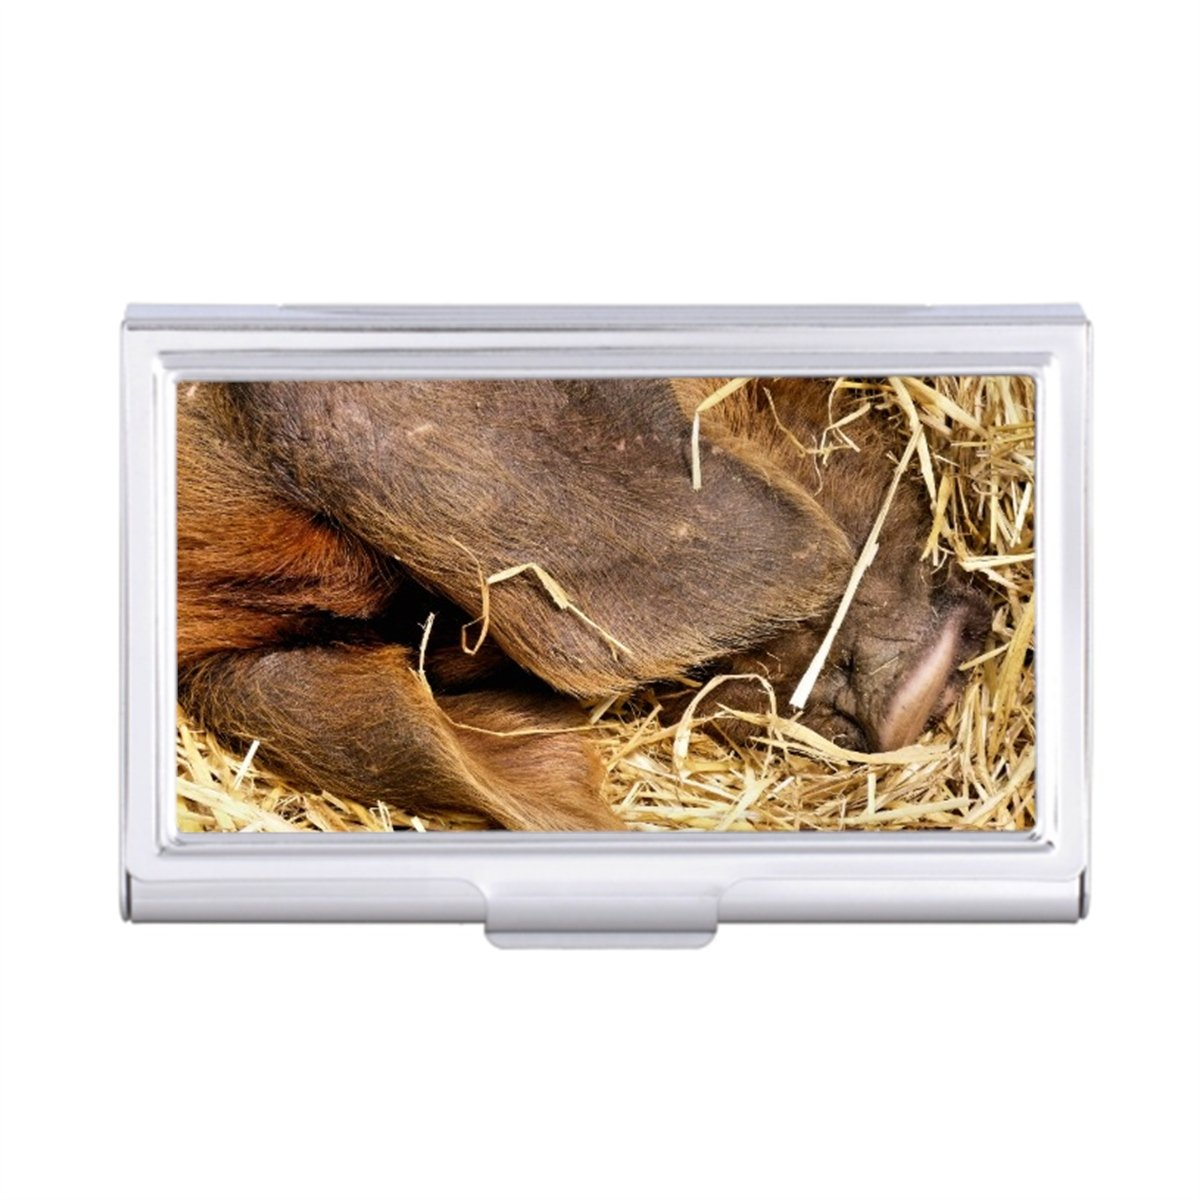 PIGS Business Card Holder Case